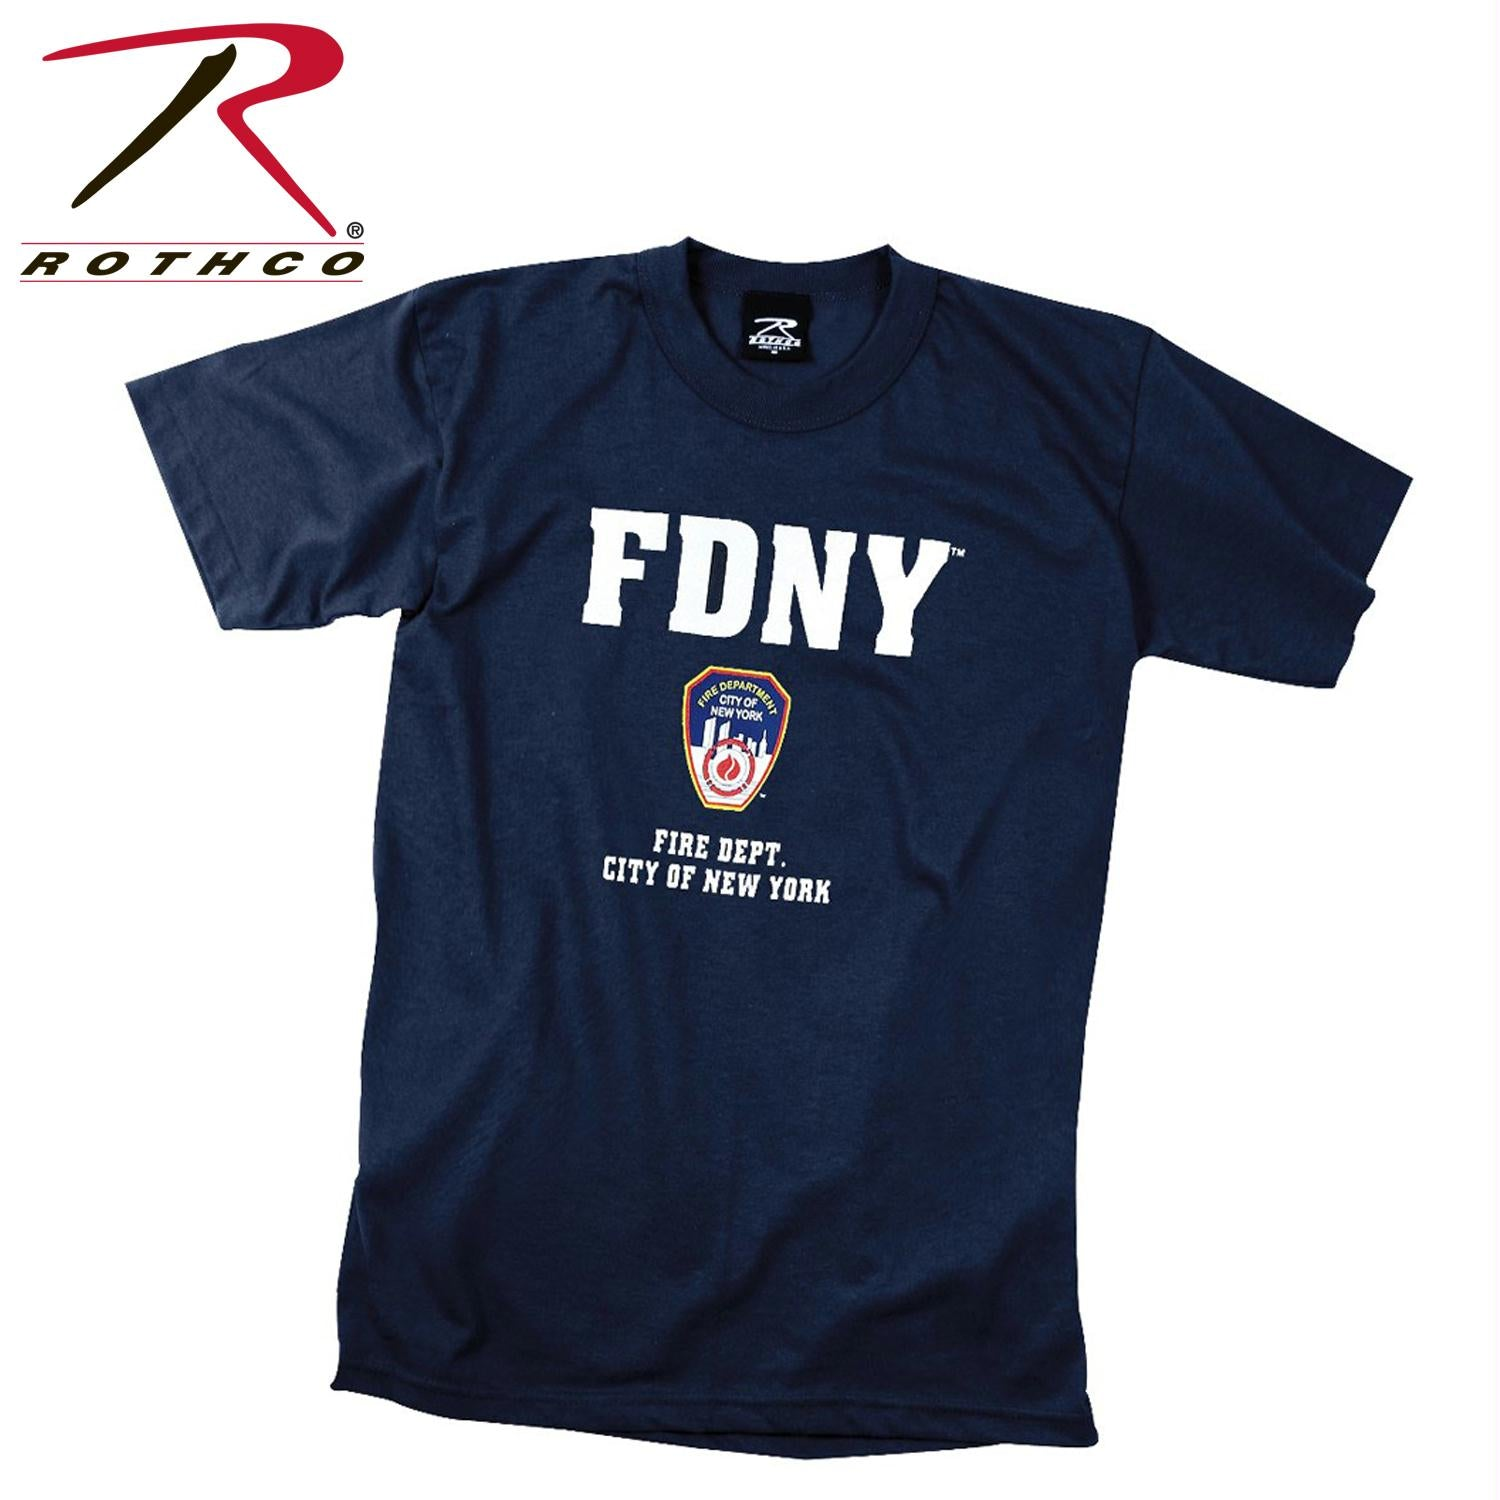 Officially Licensed FDNY T-shirt - Navy Blue / 2XL